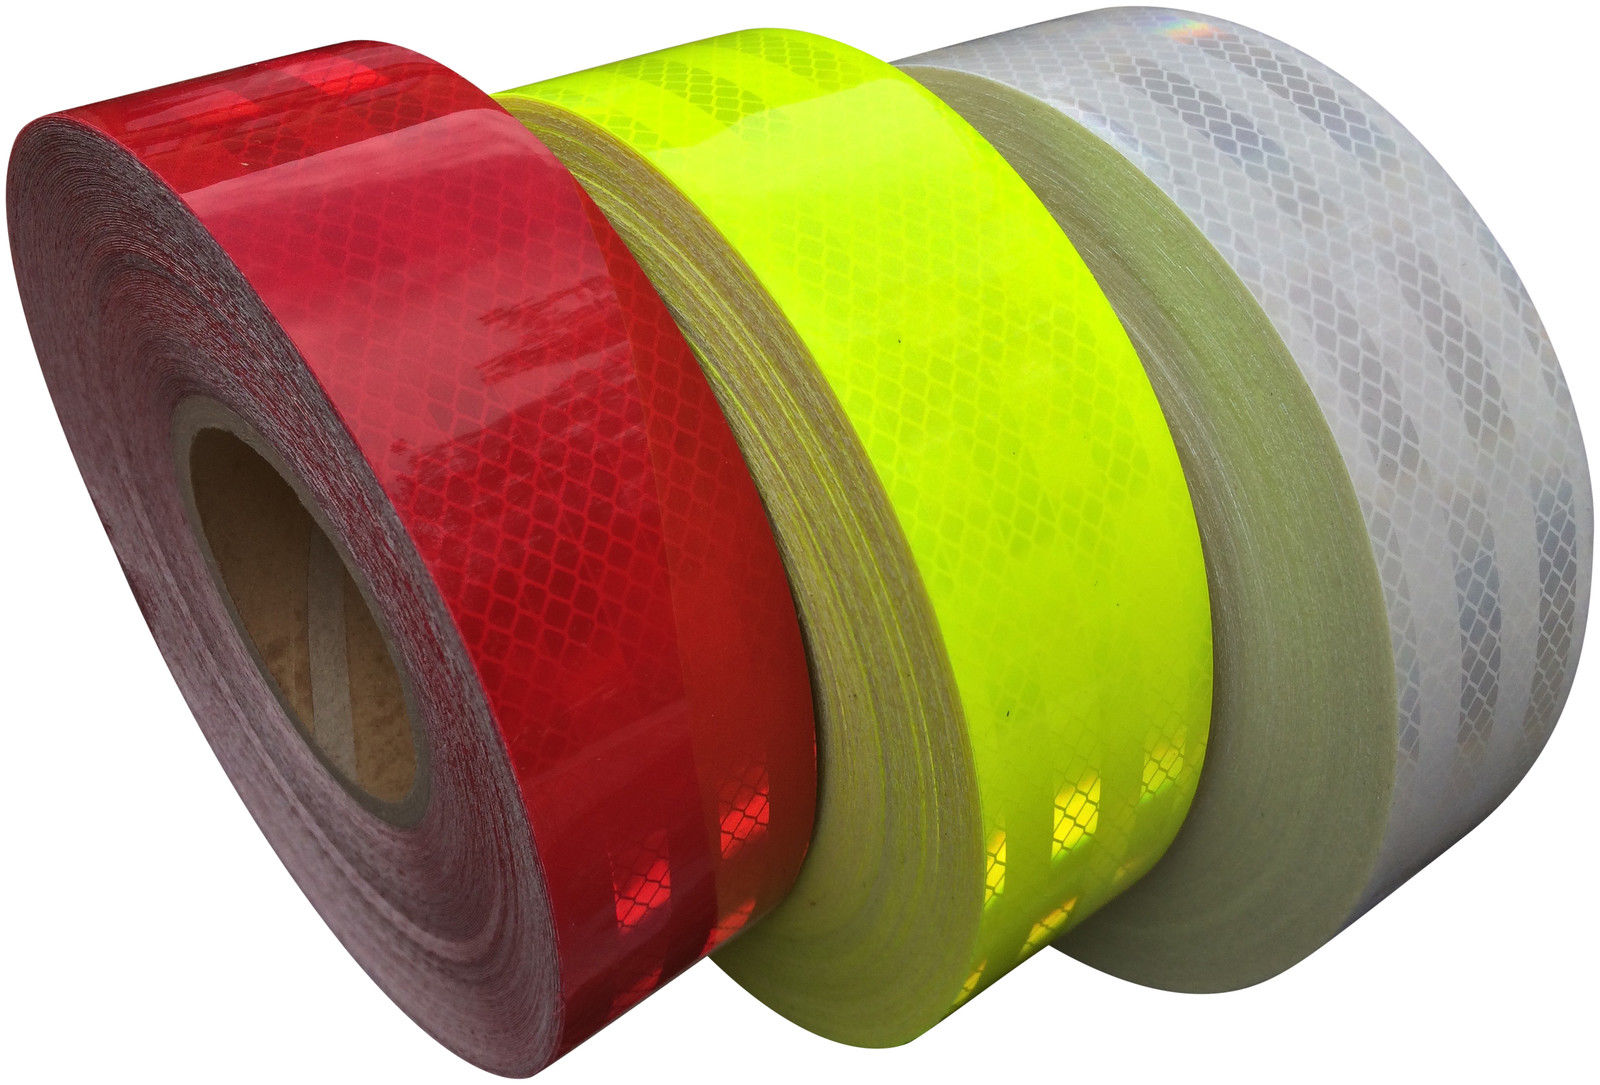 50mm x 20M 100mm Golden Yellow High Quality High Intensity Self-Adhesive Reflective Tape 50mm